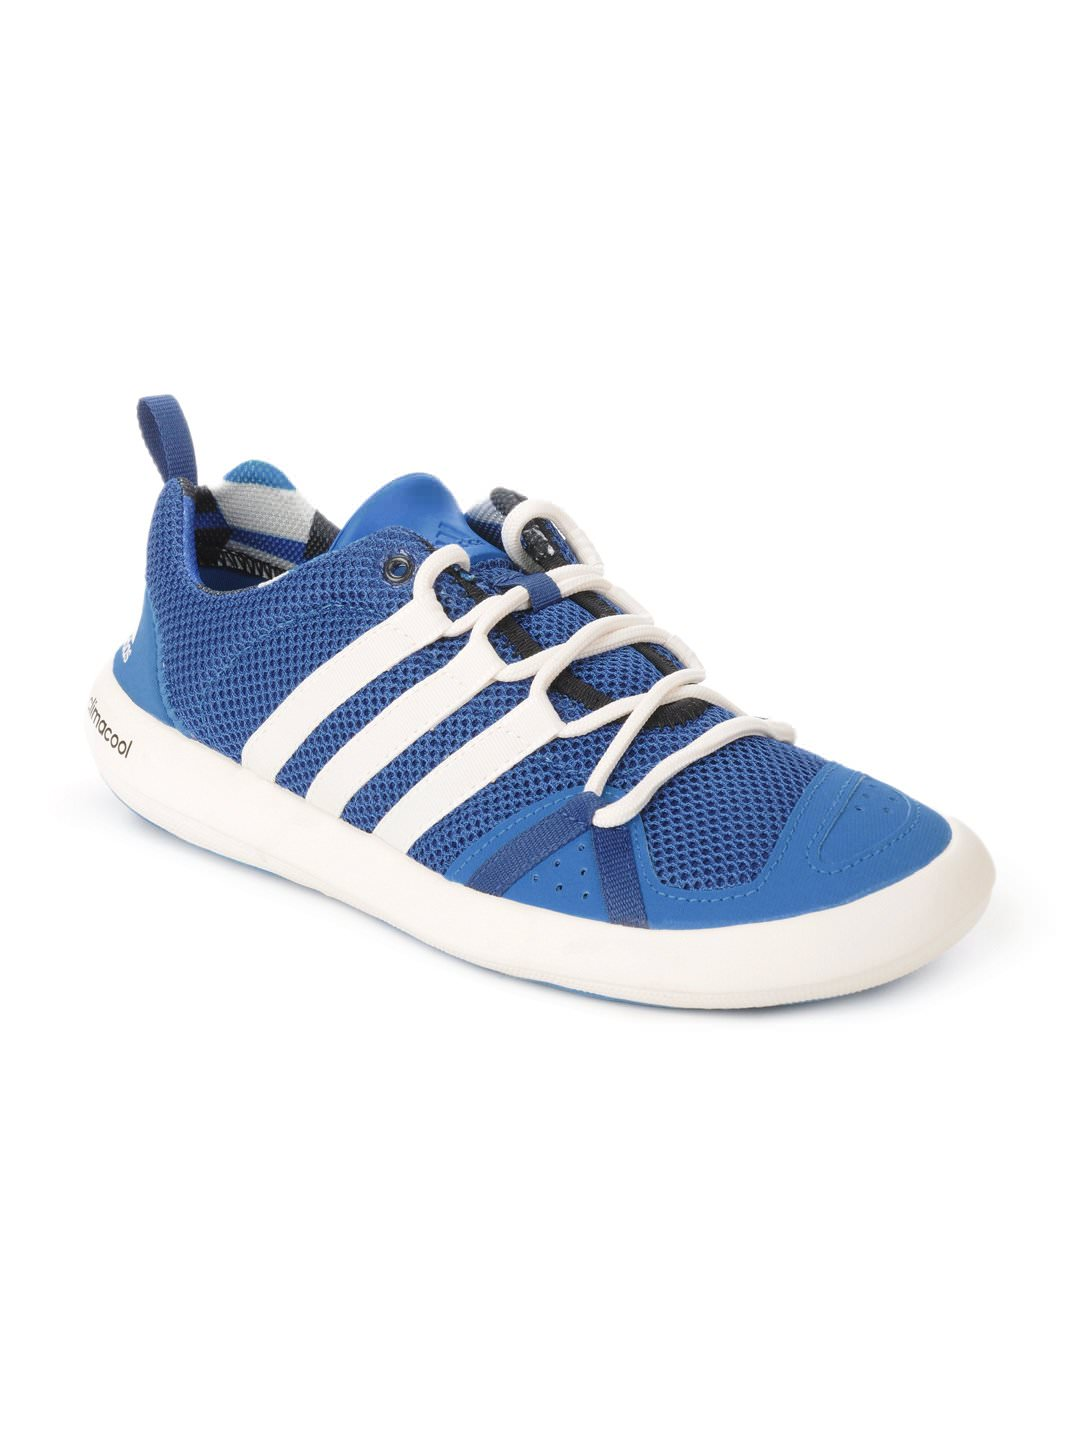 Shoes For Men 2013 Adidas Trendy Casual S...